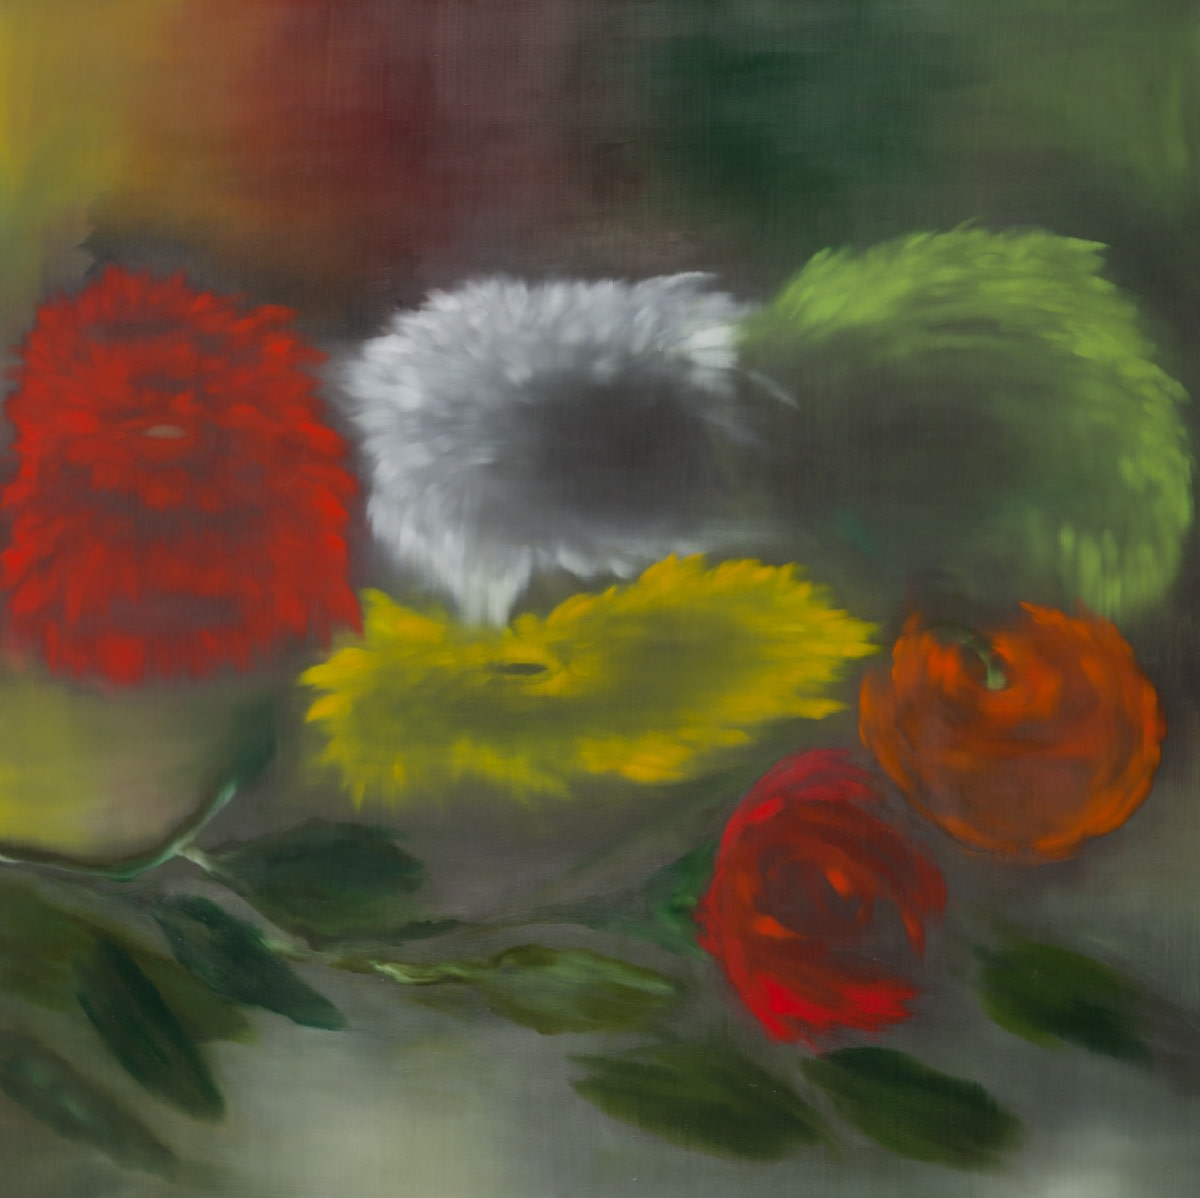 Ross Bleckner, Untitled (Red/Green), 2013